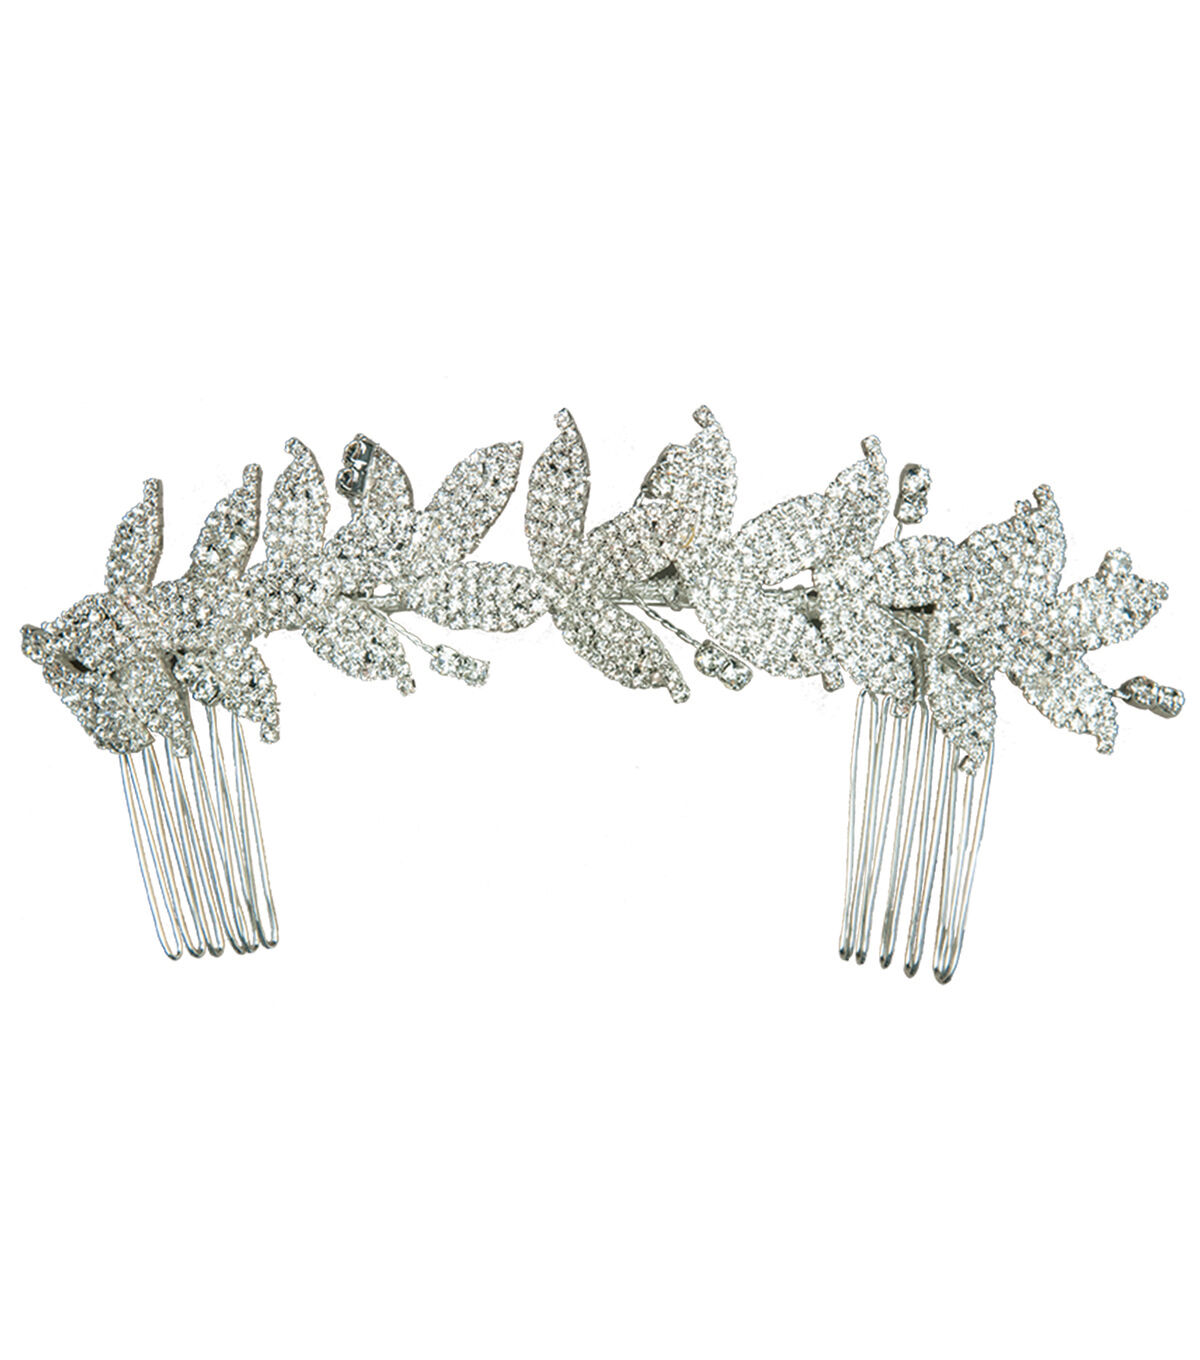 1920s Hairstyles History- Long Hair to Bobbed Hair Save The Date Double Hair Comb - Silver Leaf $17.49 AT vintagedancer.com